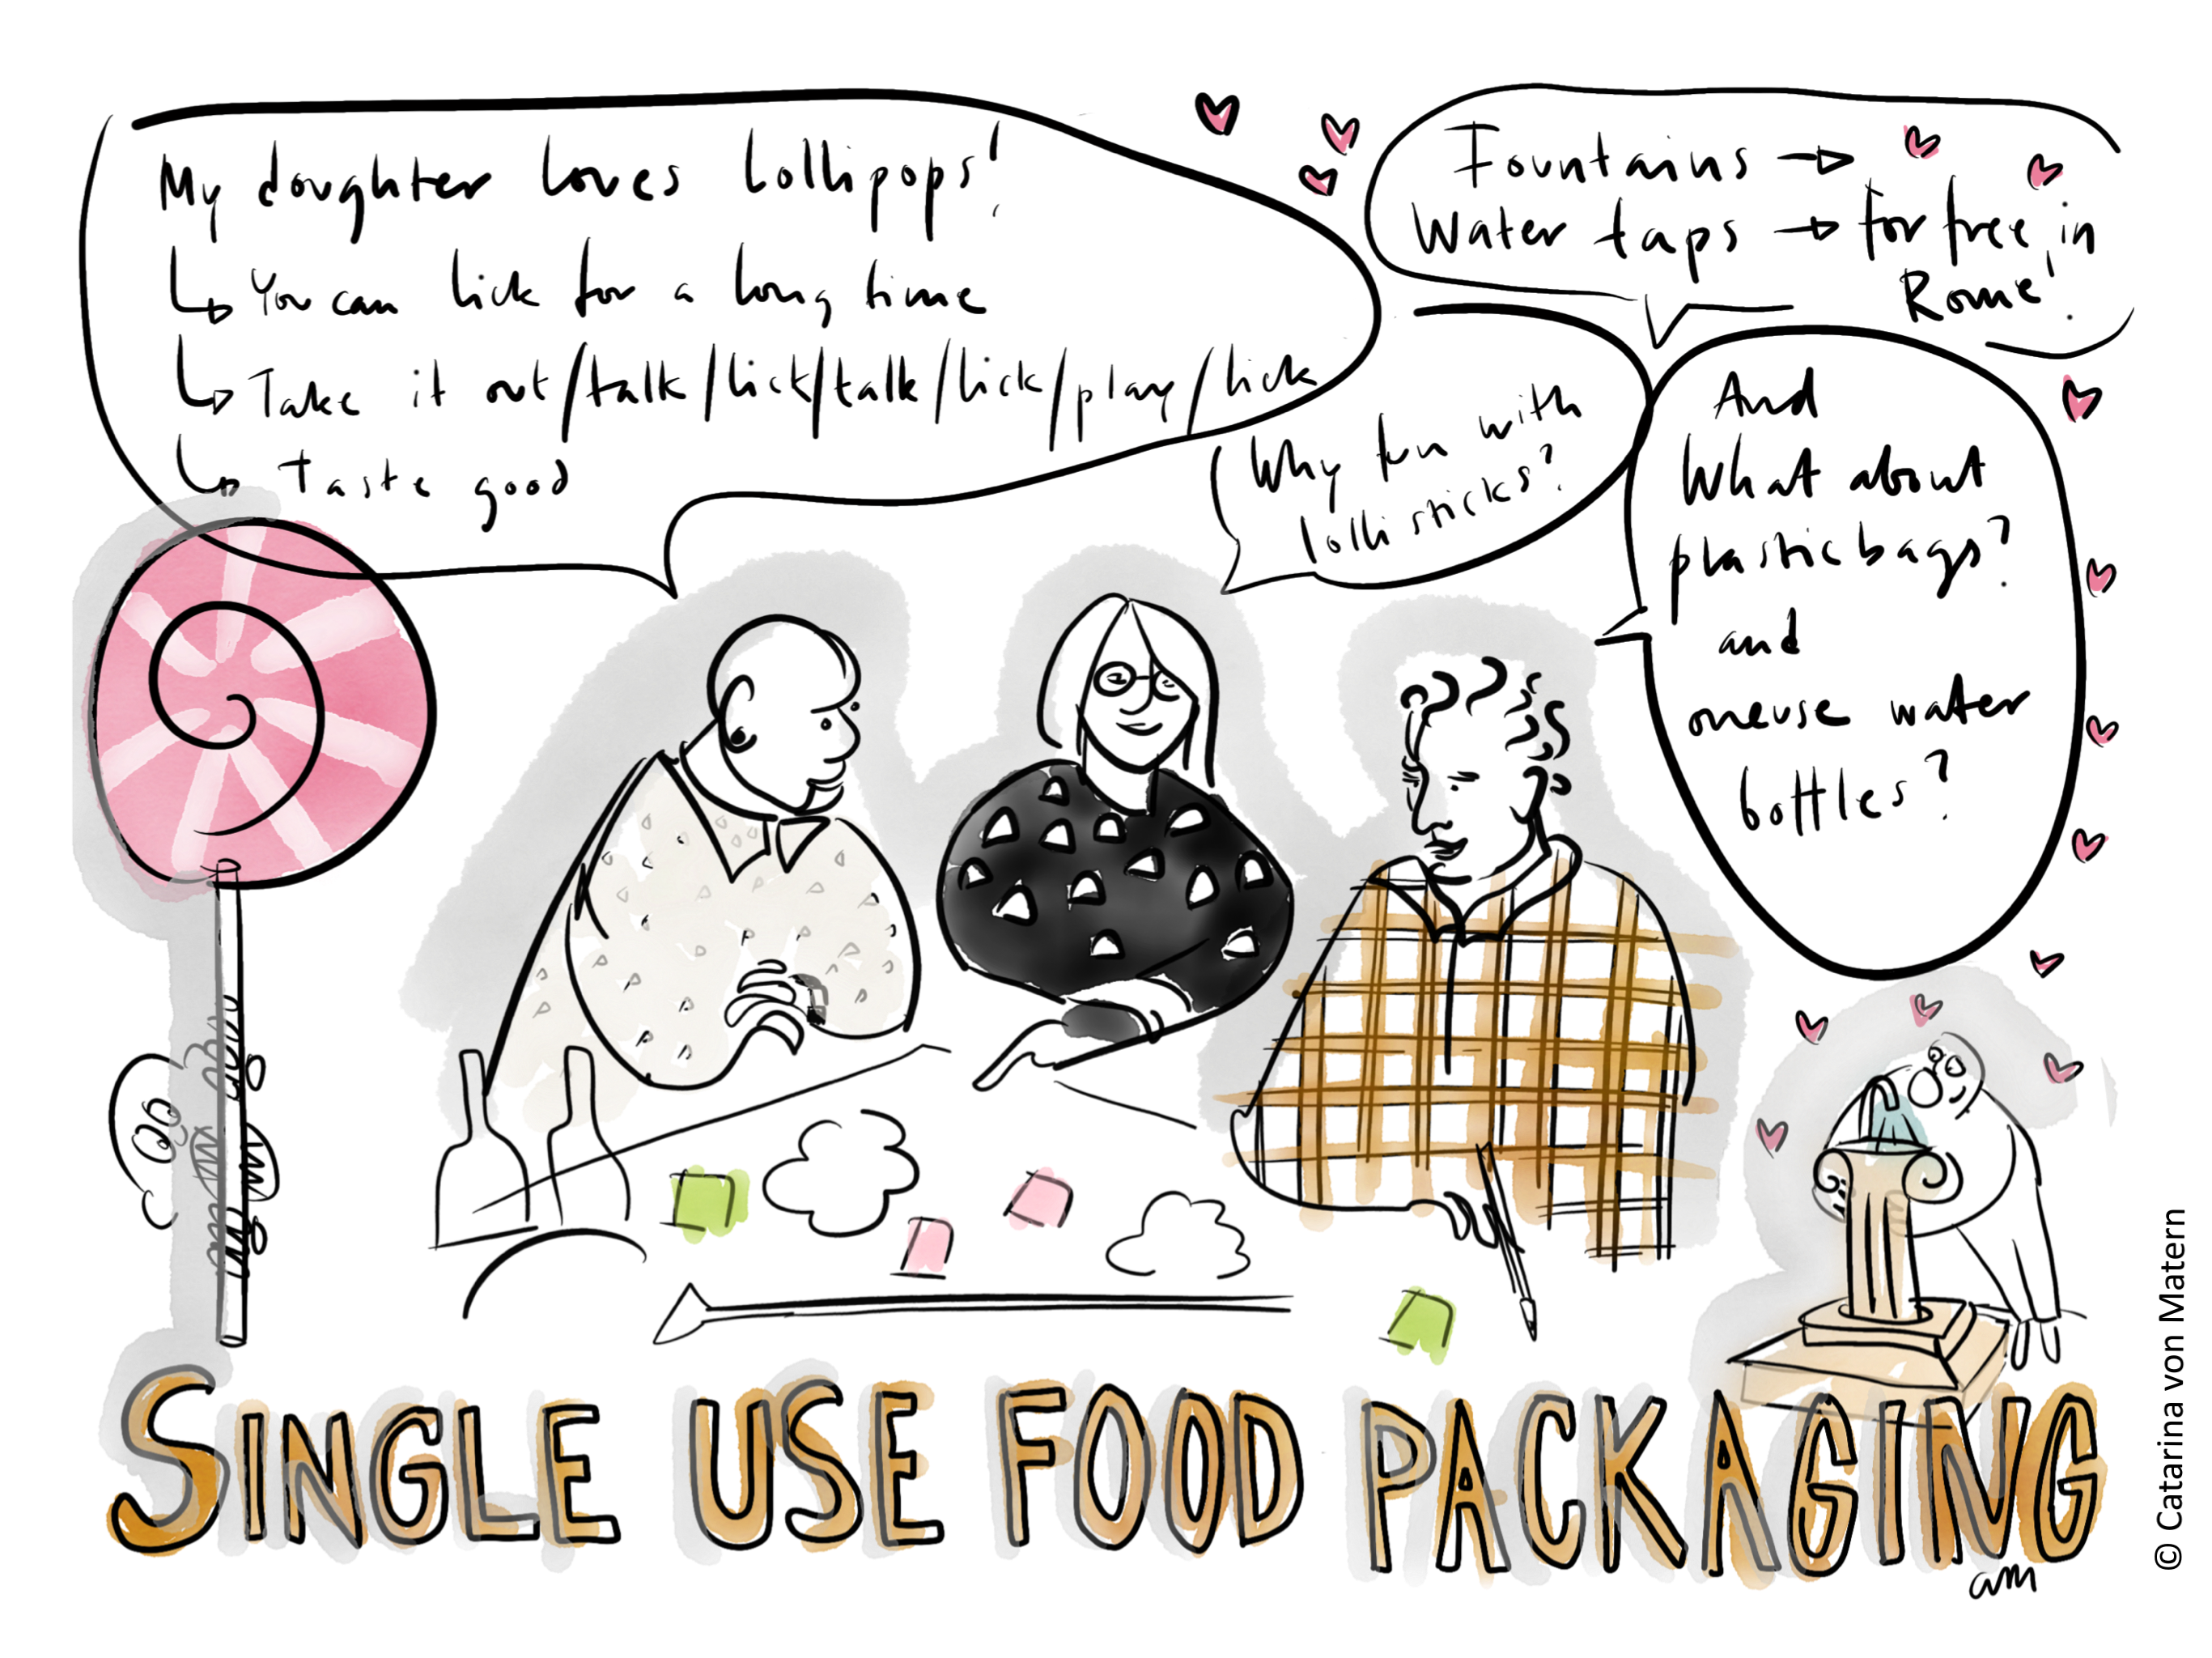 Single Use Food Packaging